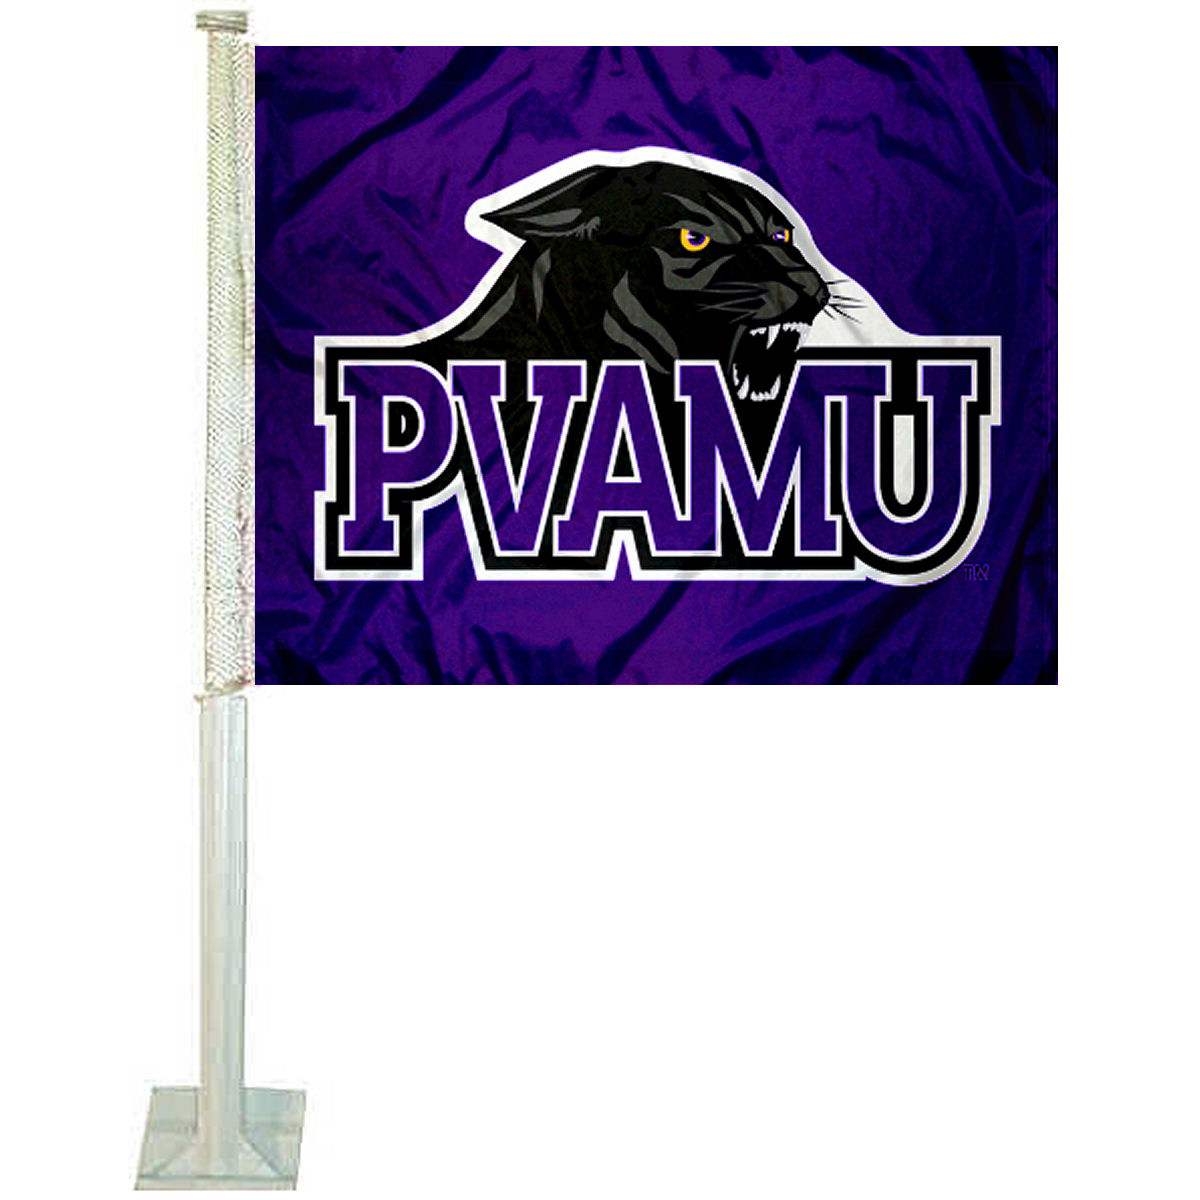 "Prairie View A&M University 12"" x 15"" Car Flag"